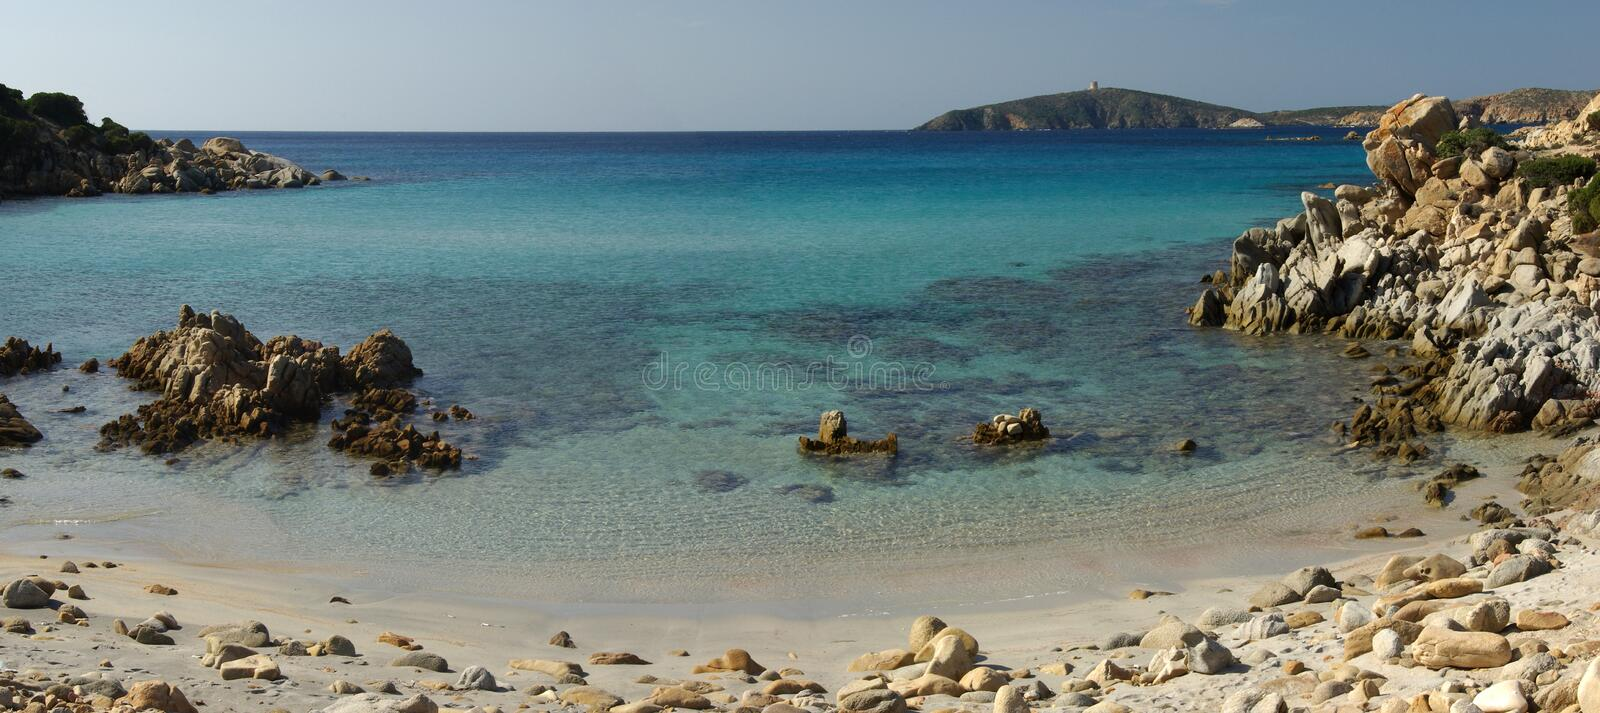 Download Wild View - Perdalonga Beach - Sardinia Stock Image - Image: 6906215